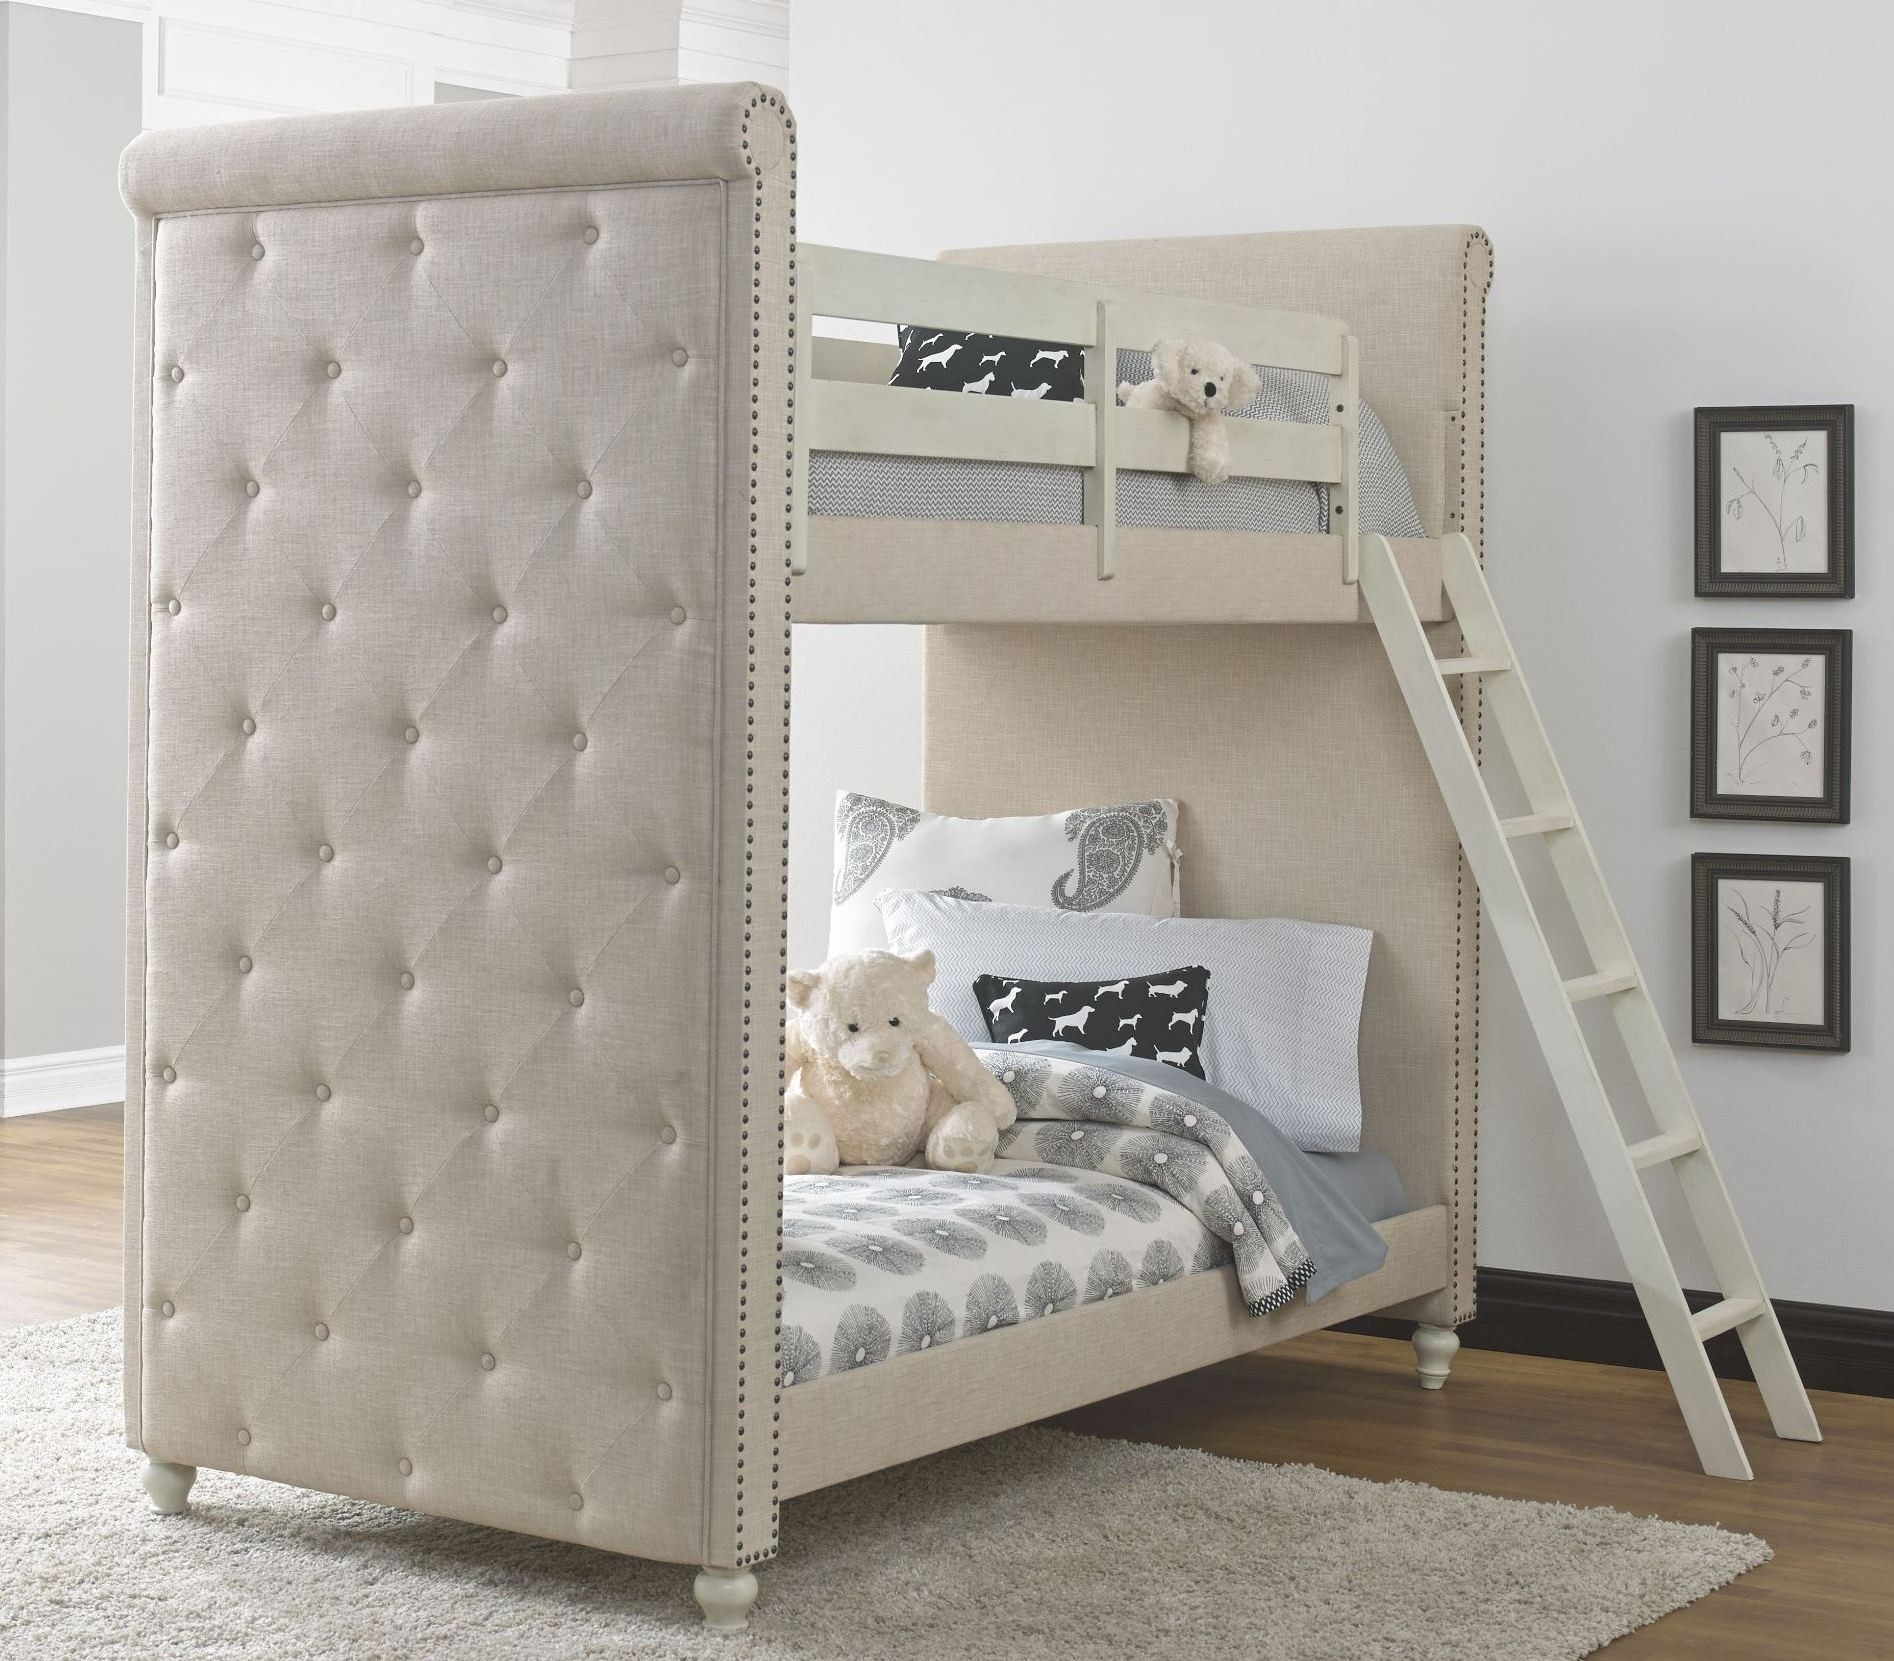 madison bunk bedroom set from samuel lawrence 8890 730 731 732